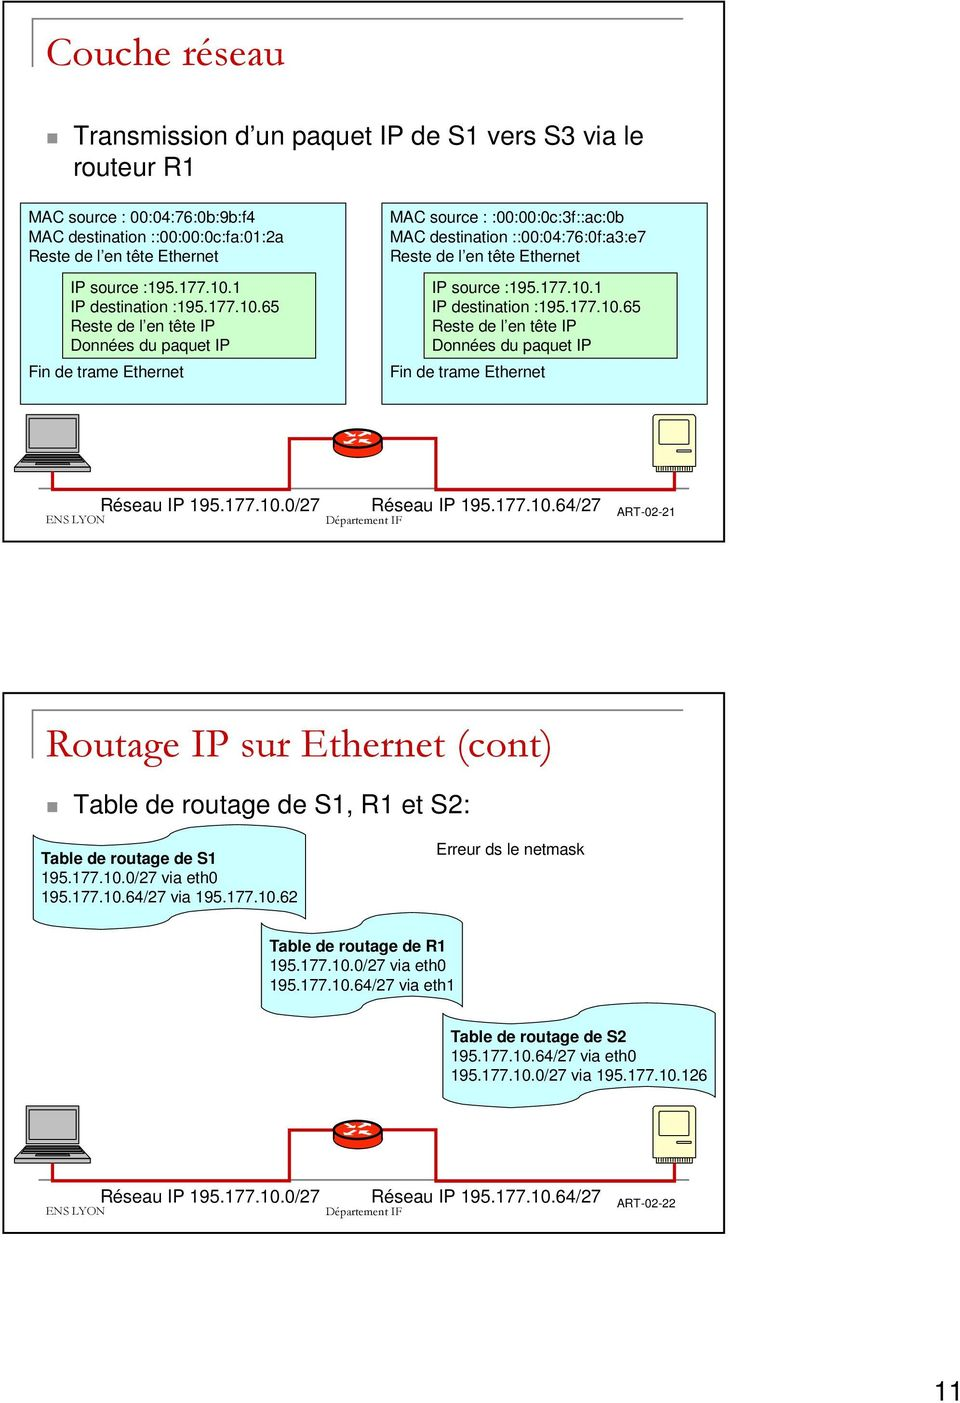 77.0.65 Reste de l en tête IP Données du paquet IP Fin de trame Ethernet Réseau IP 95.77.0.0/27 Réseau IP 95.77.0.64/27 ART-02-2 Routage IP sur Ethernet (cont) Table de routage de S, R et S2: Table de routage de S 95.